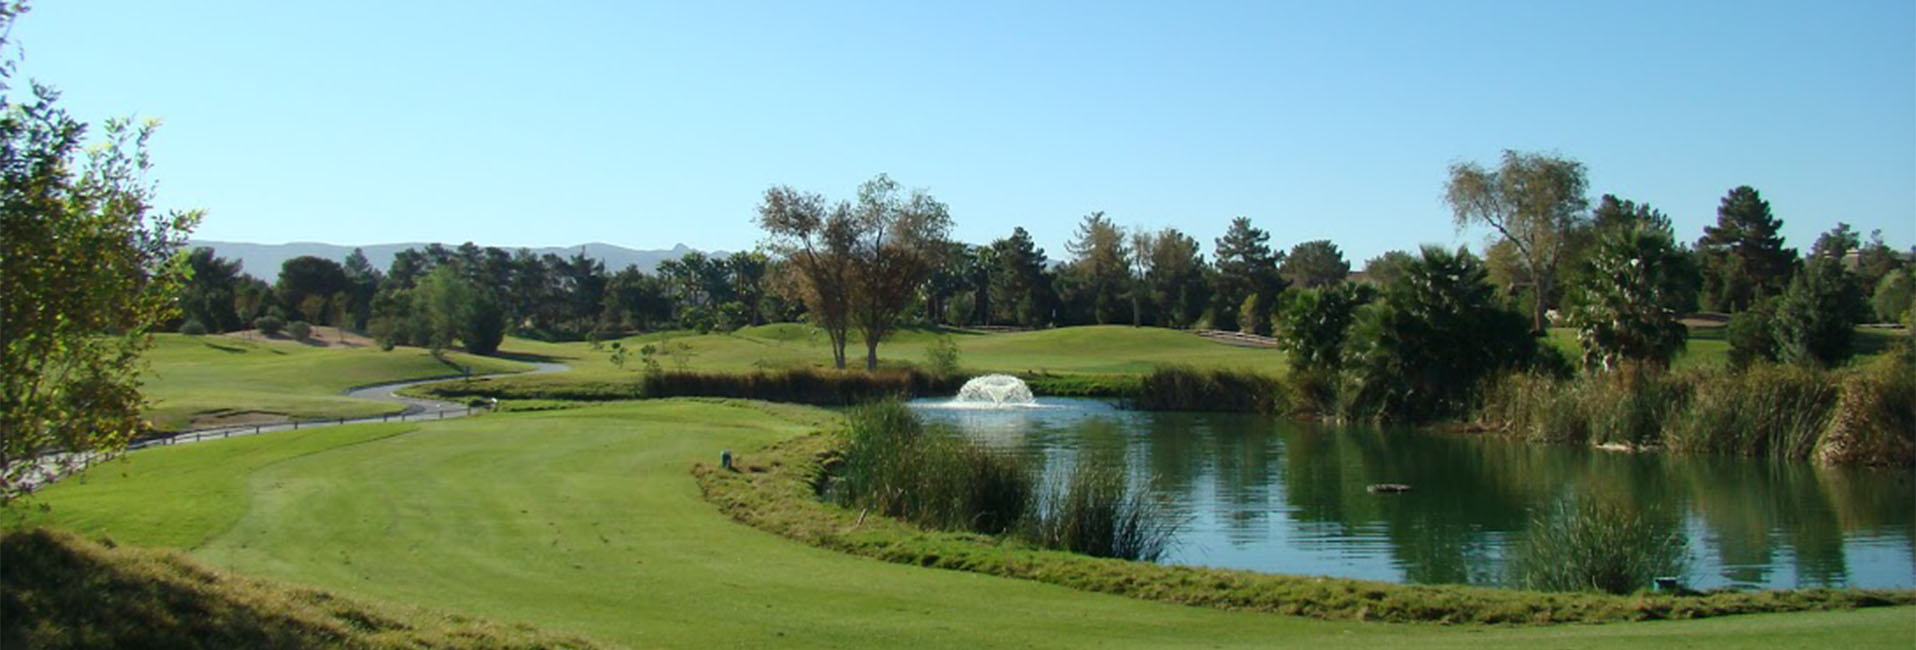 Image to show local area golf course